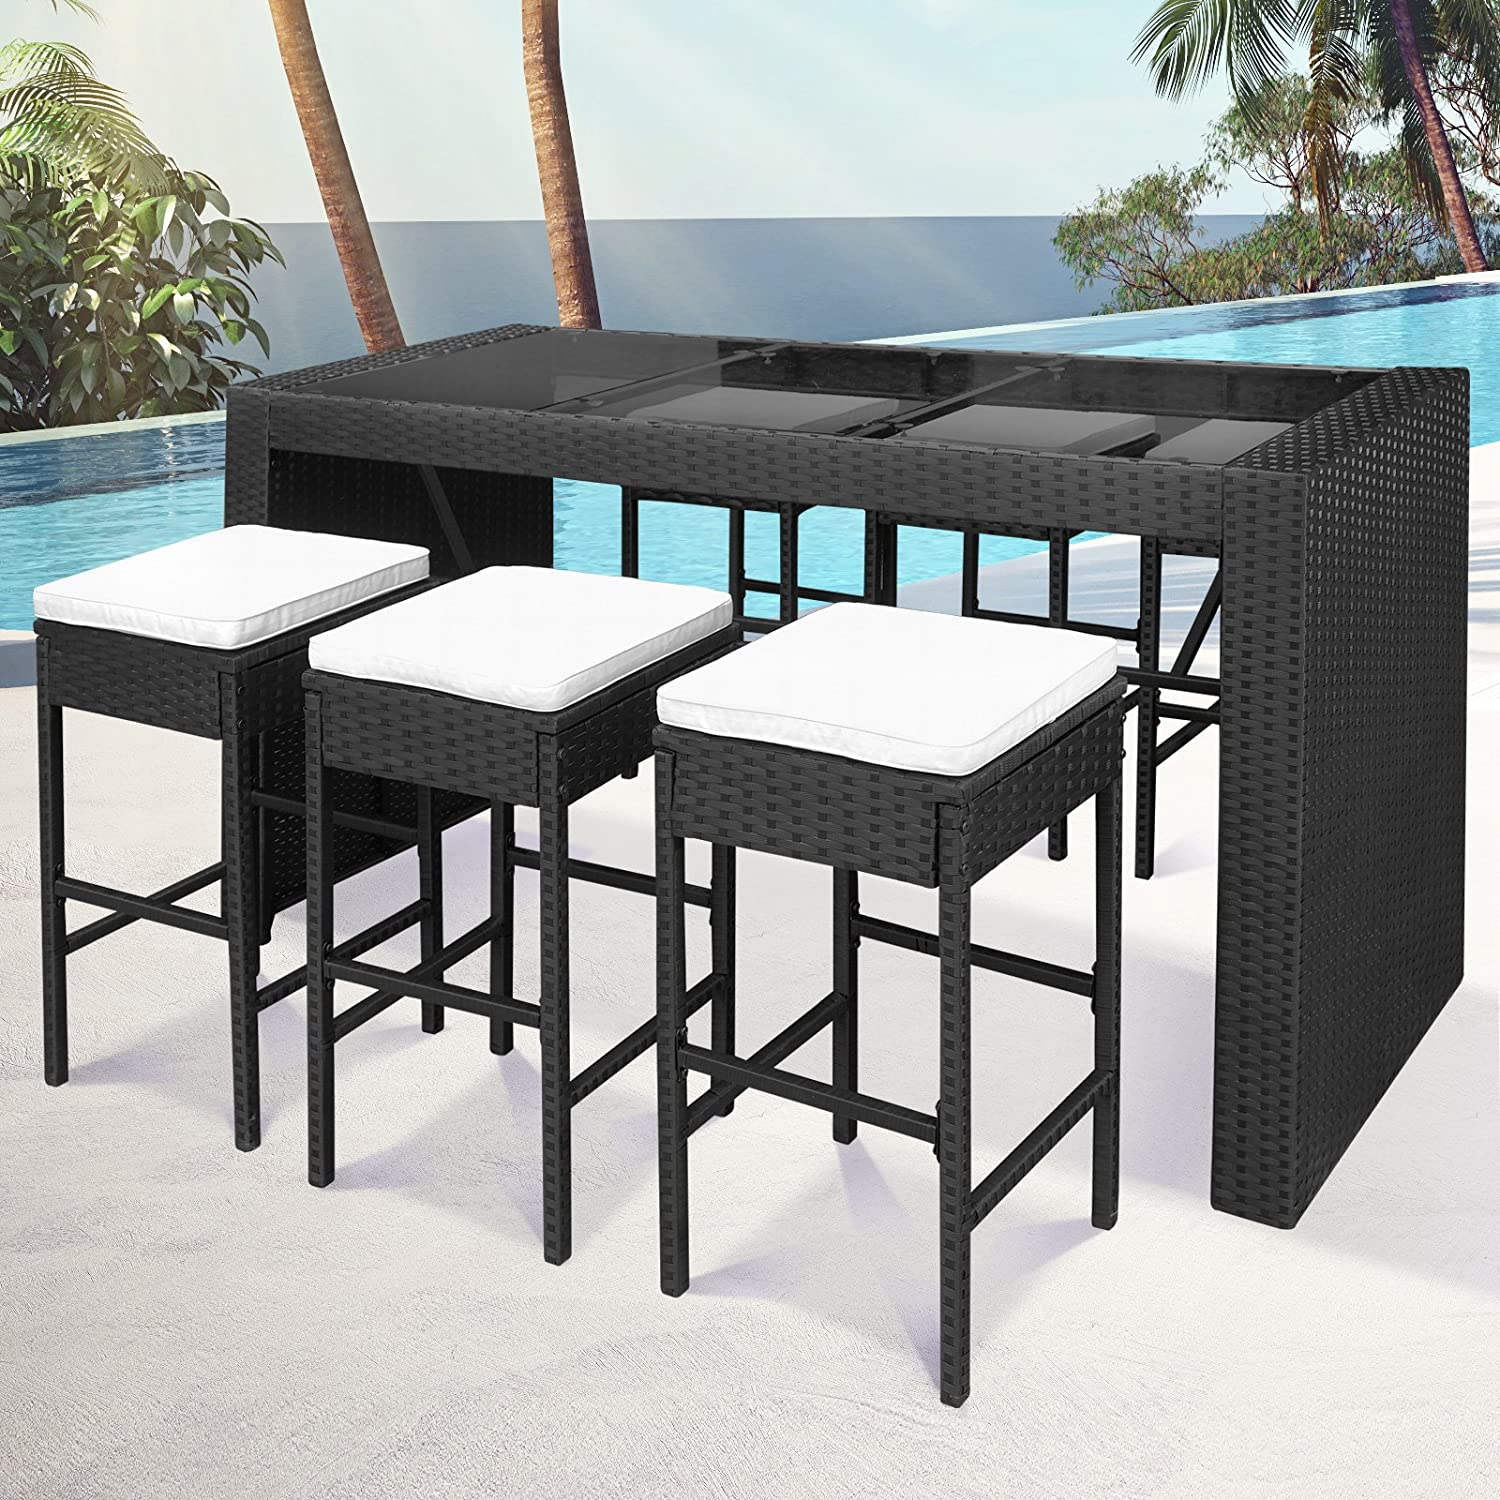 miadomodo polyrattan bar sitzgarnitur sitzgruppe gartenm bel 7 teilig in der farbe nach ihrer. Black Bedroom Furniture Sets. Home Design Ideas